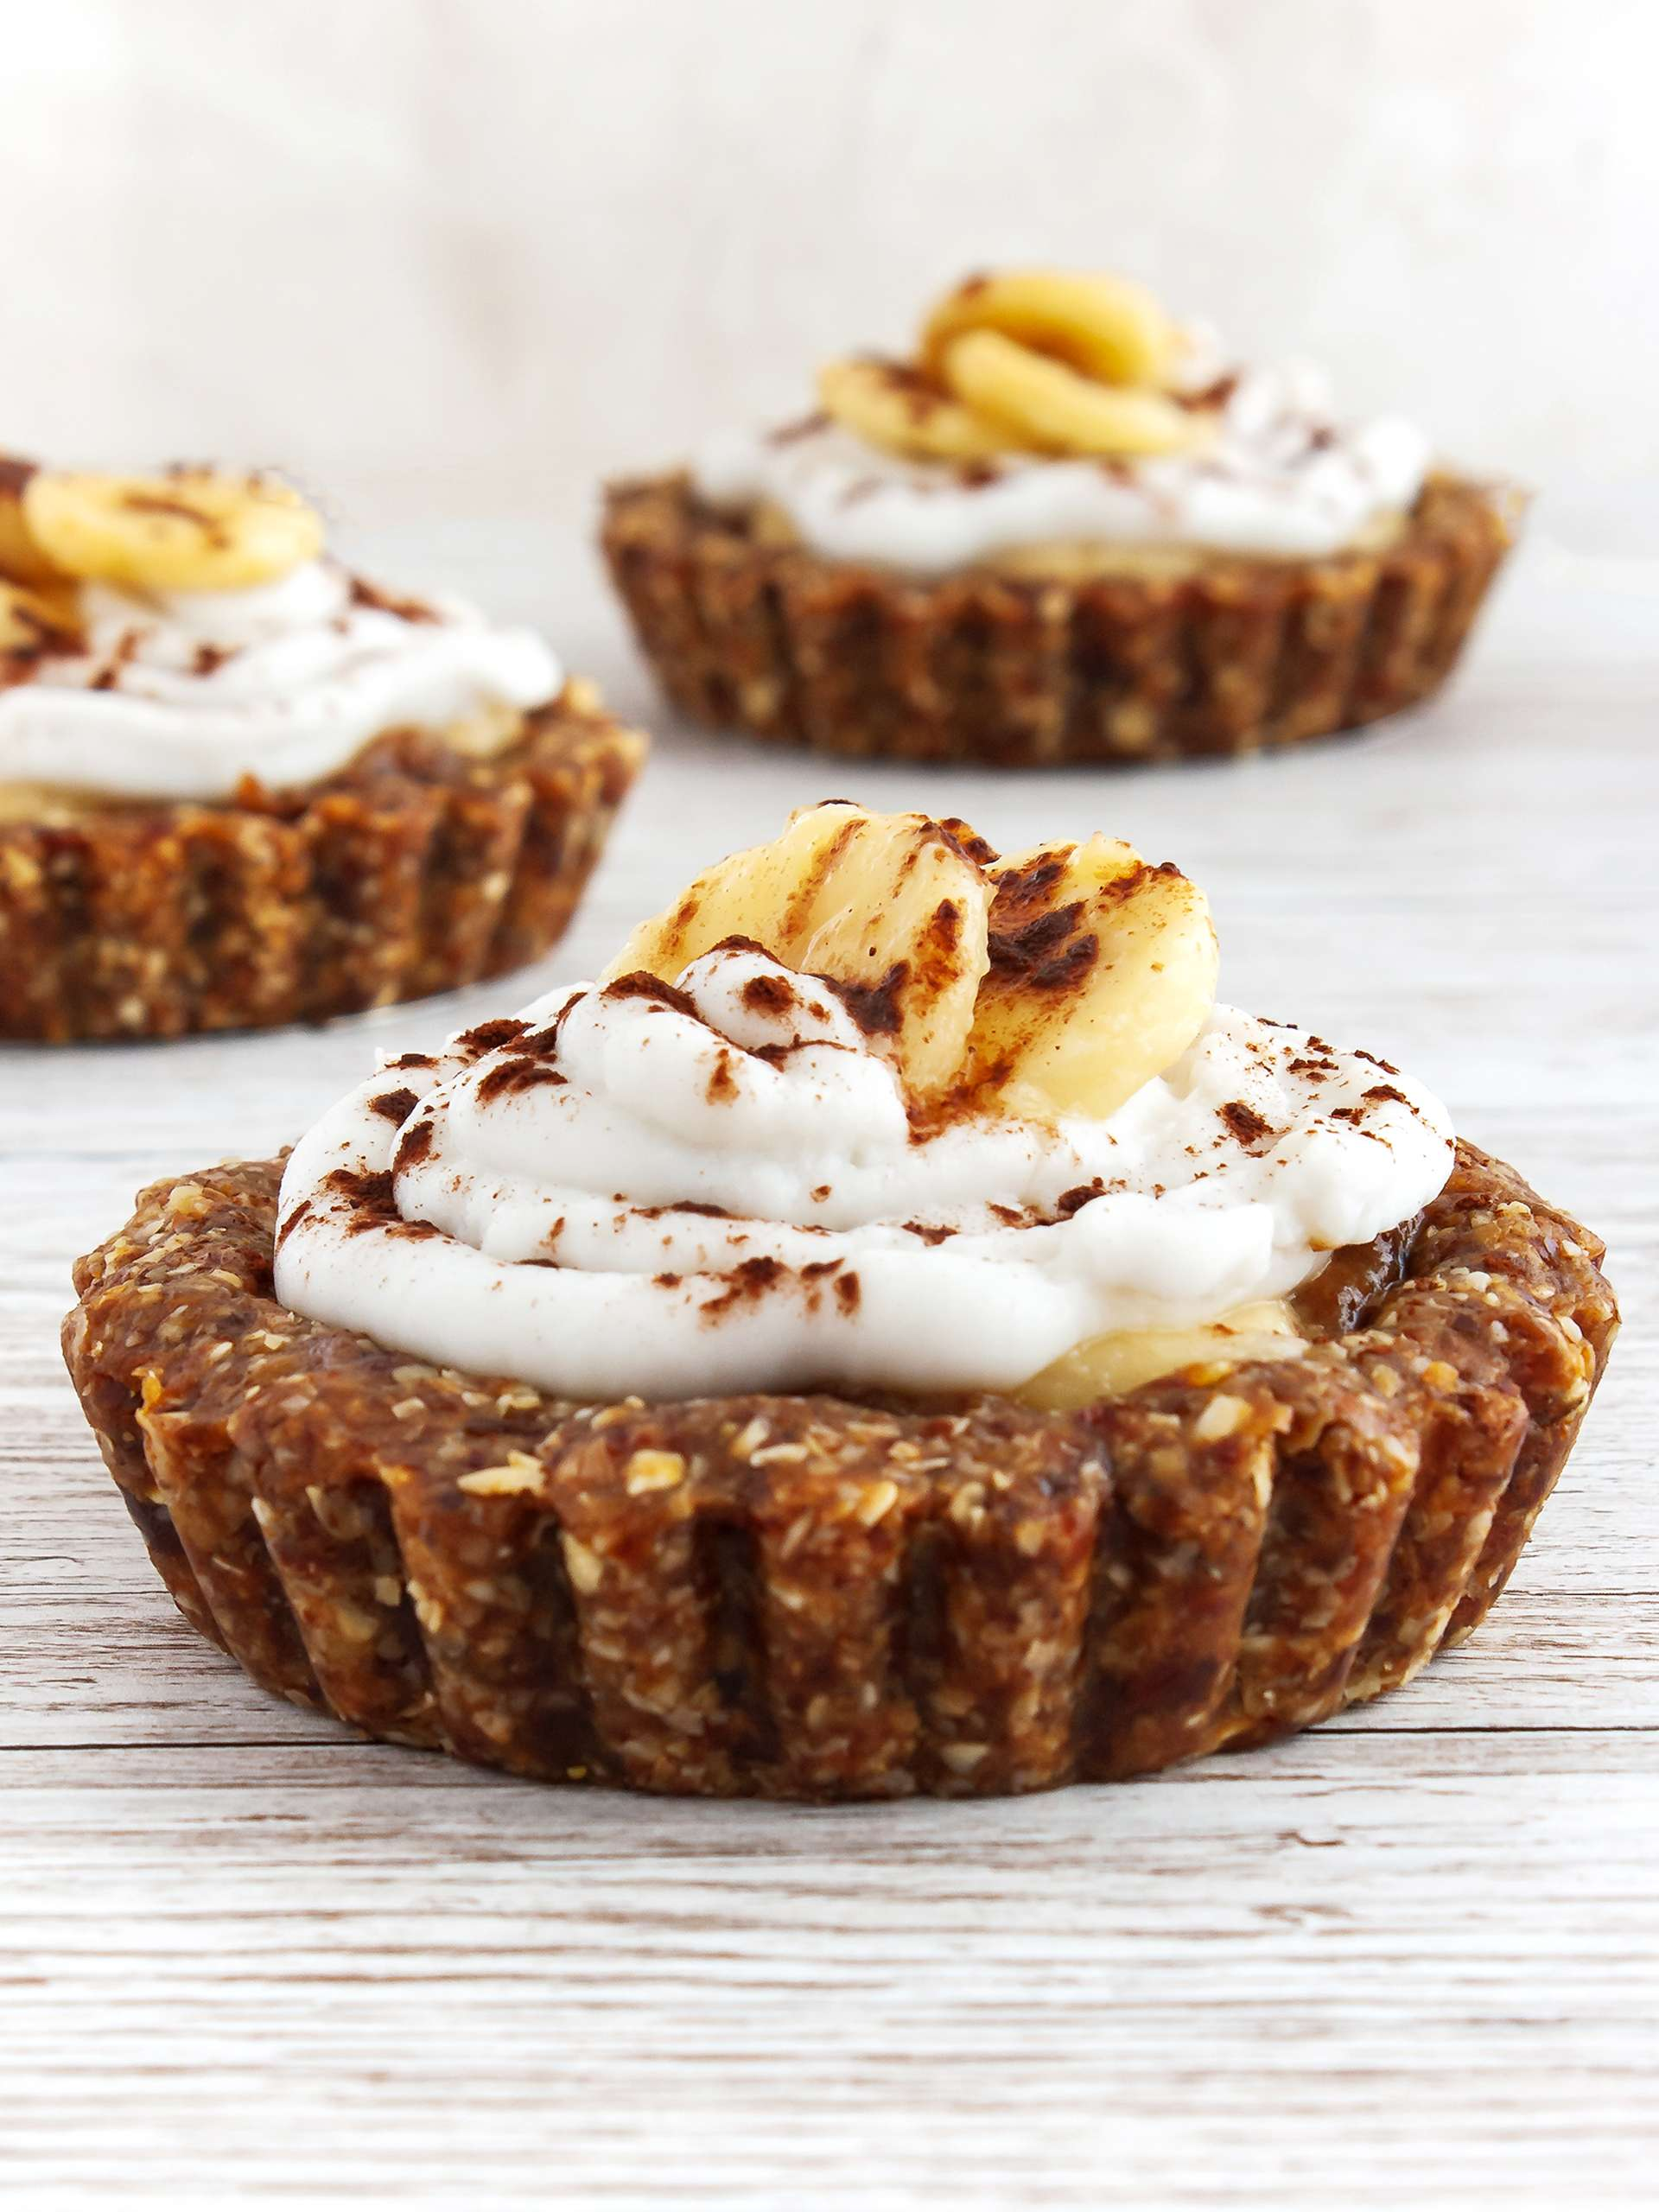 Gluten Free Vegan Banoffee Pie